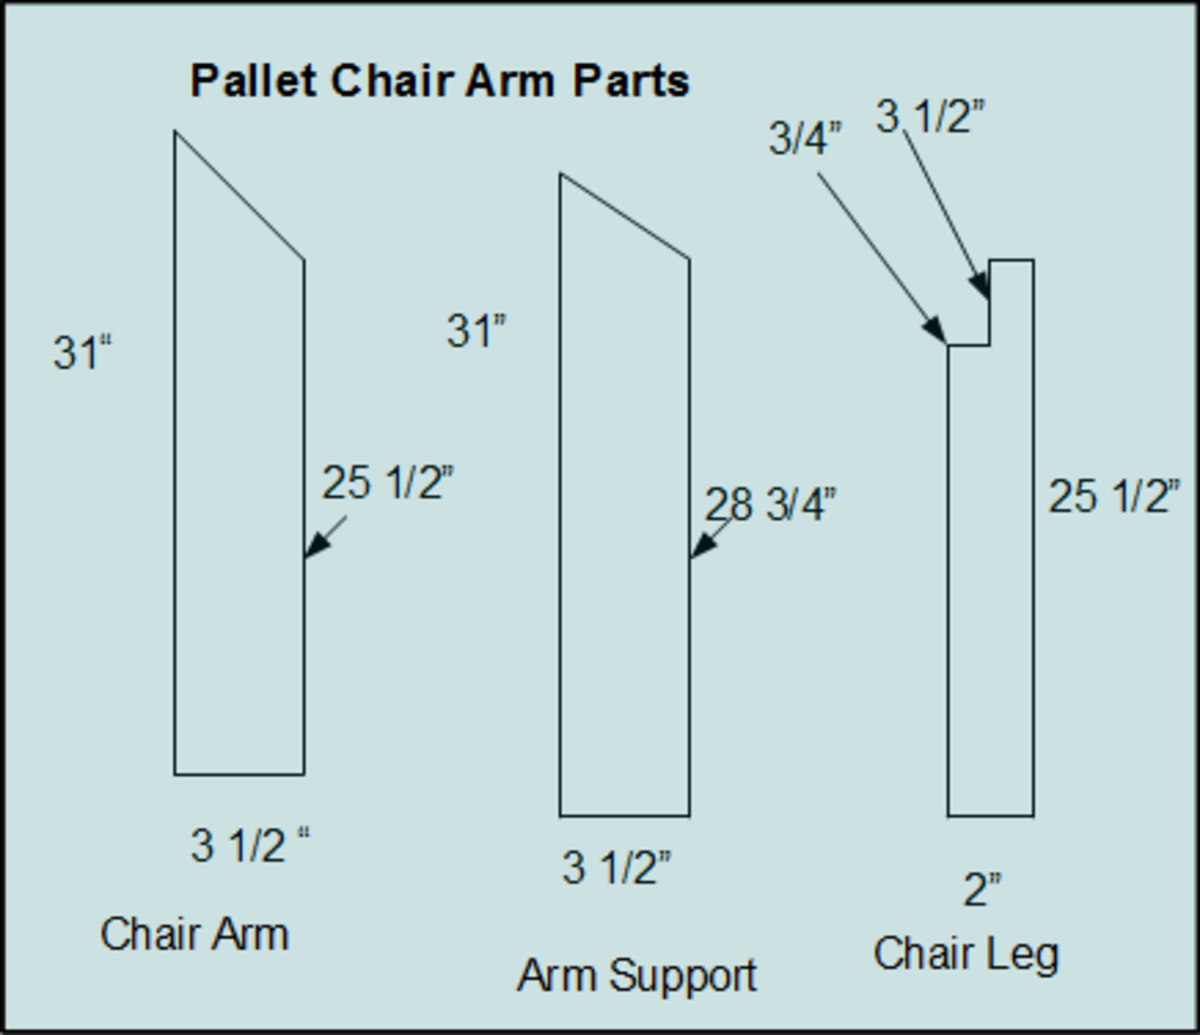 These are the parts you will need to build the arms of the pallet chair.